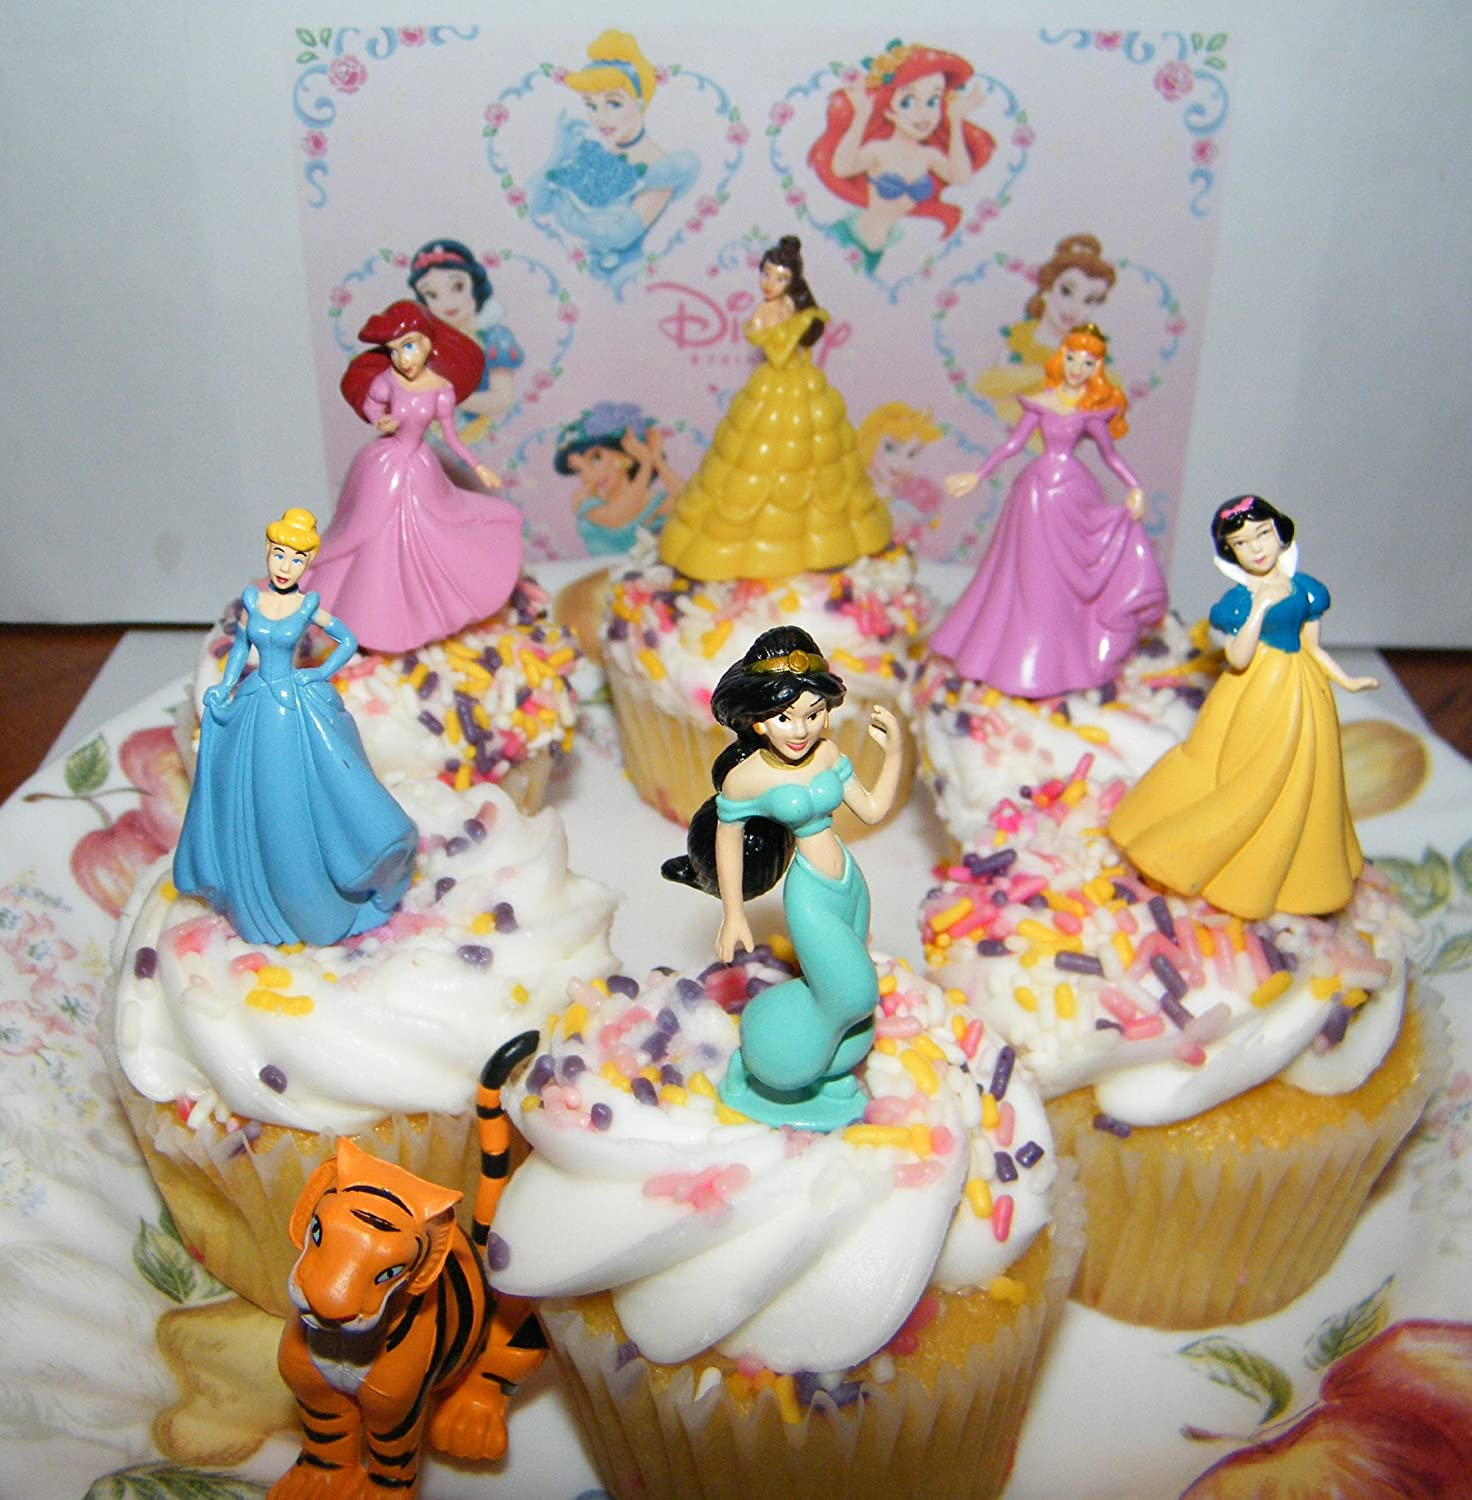 Disney Princess Birthday Party Cupcake Topper Figurines ...